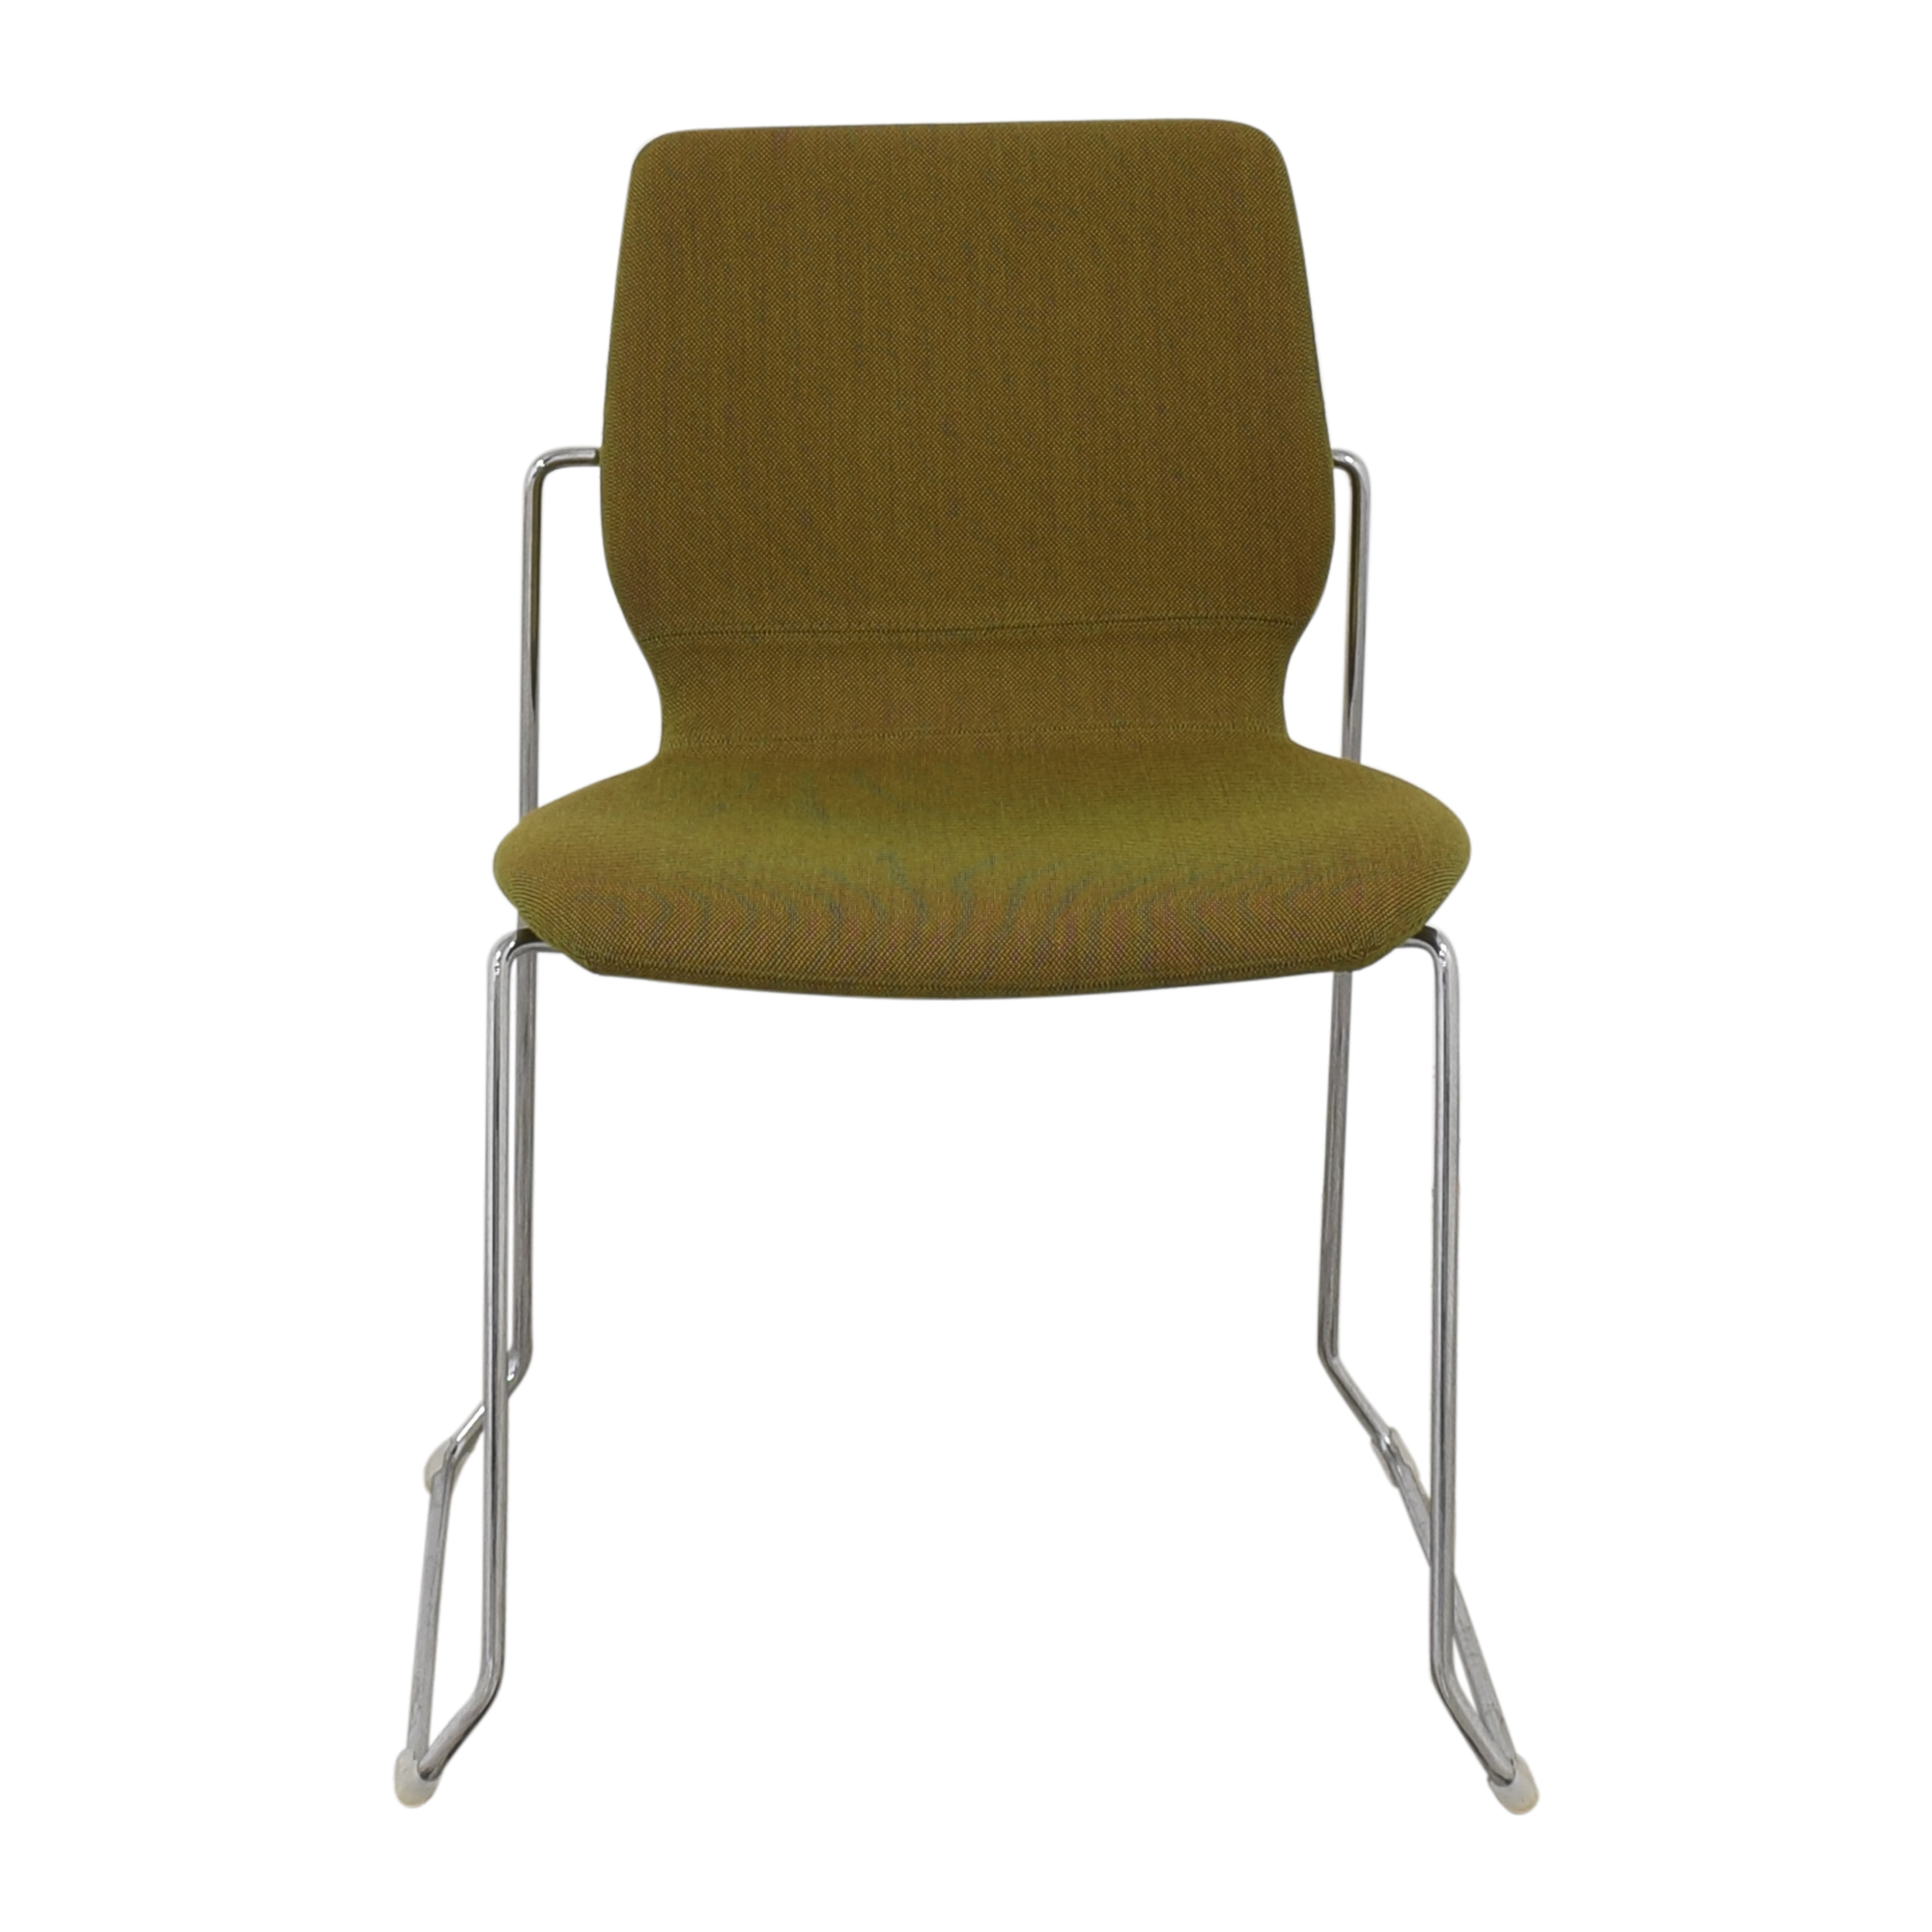 Koleksiyon Koleksiyon Asanda Armless Chair used